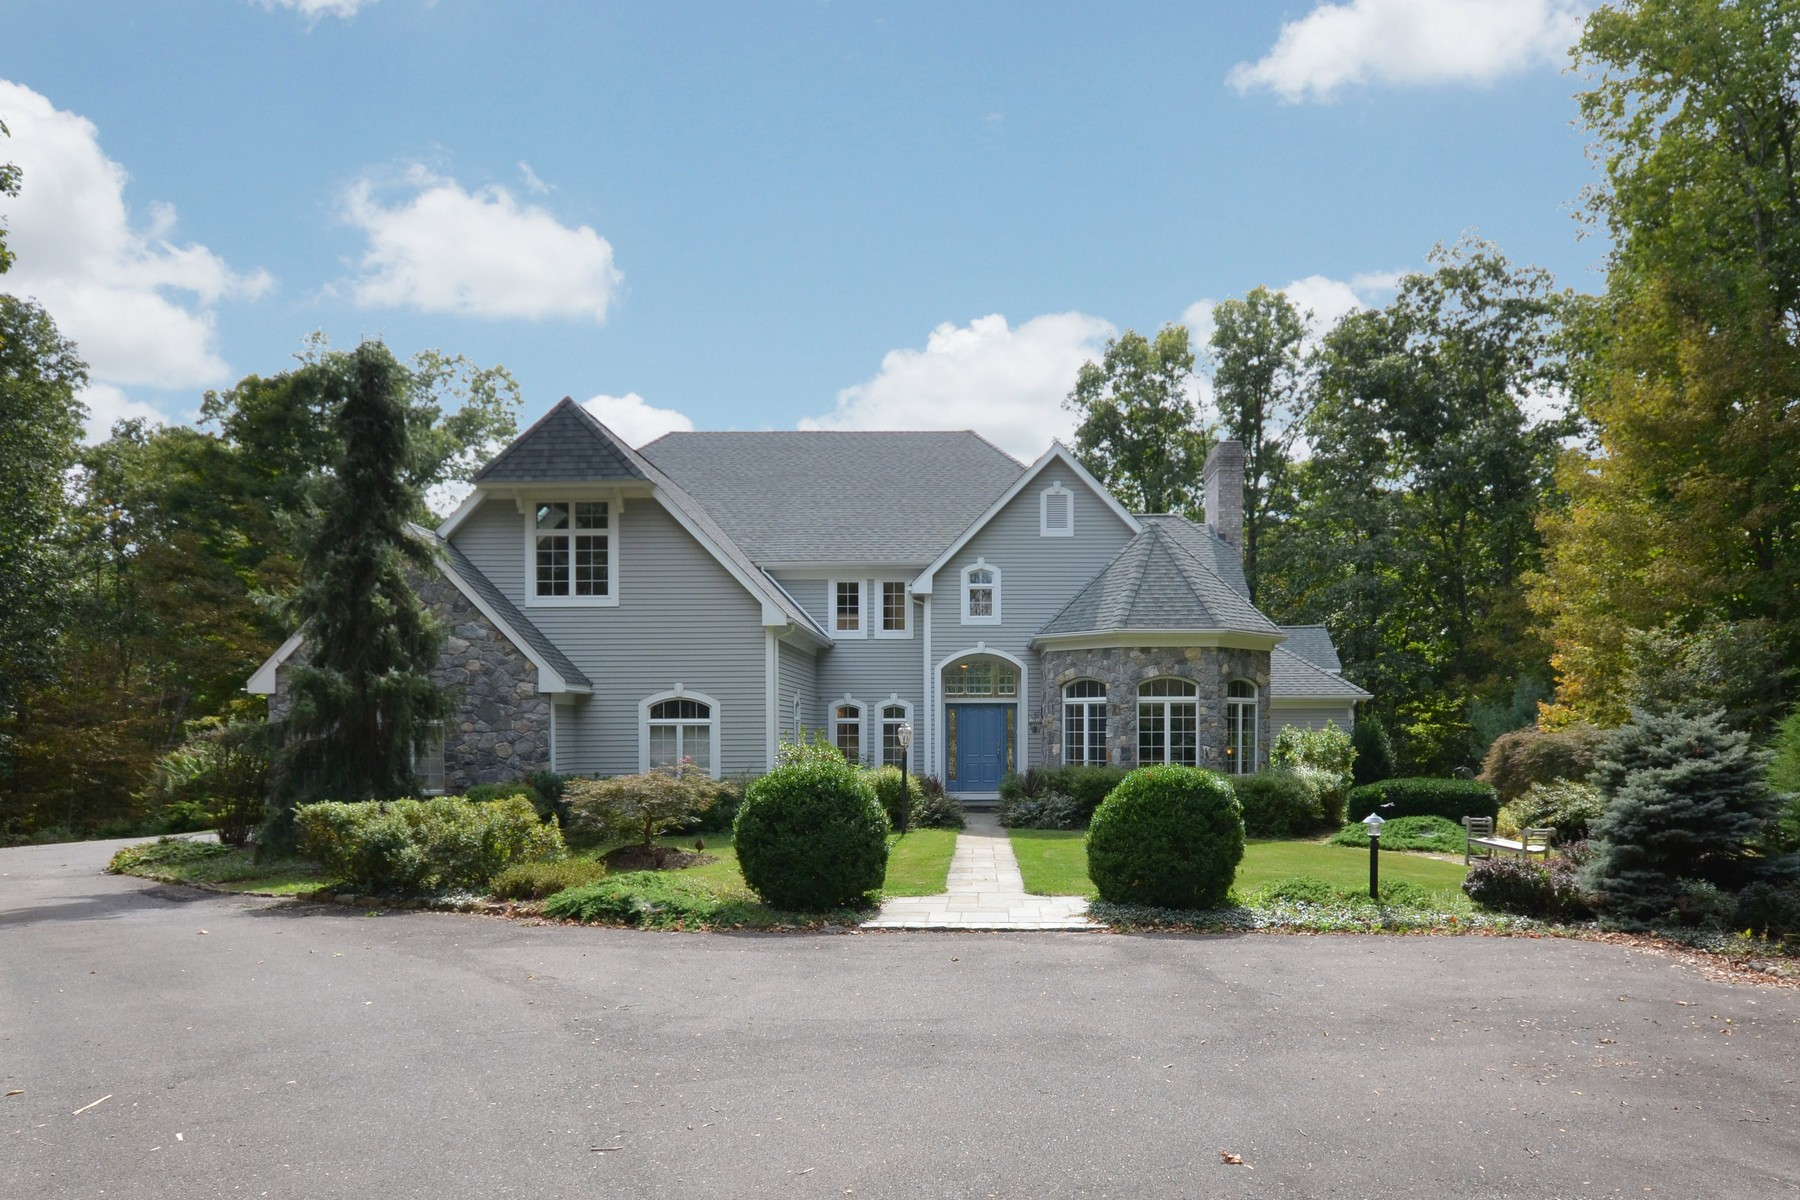 Single Family Home for Sale at Stone & Clapboard Residence 22 Diamond Hill Road Redding, Connecticut, 06896 United States